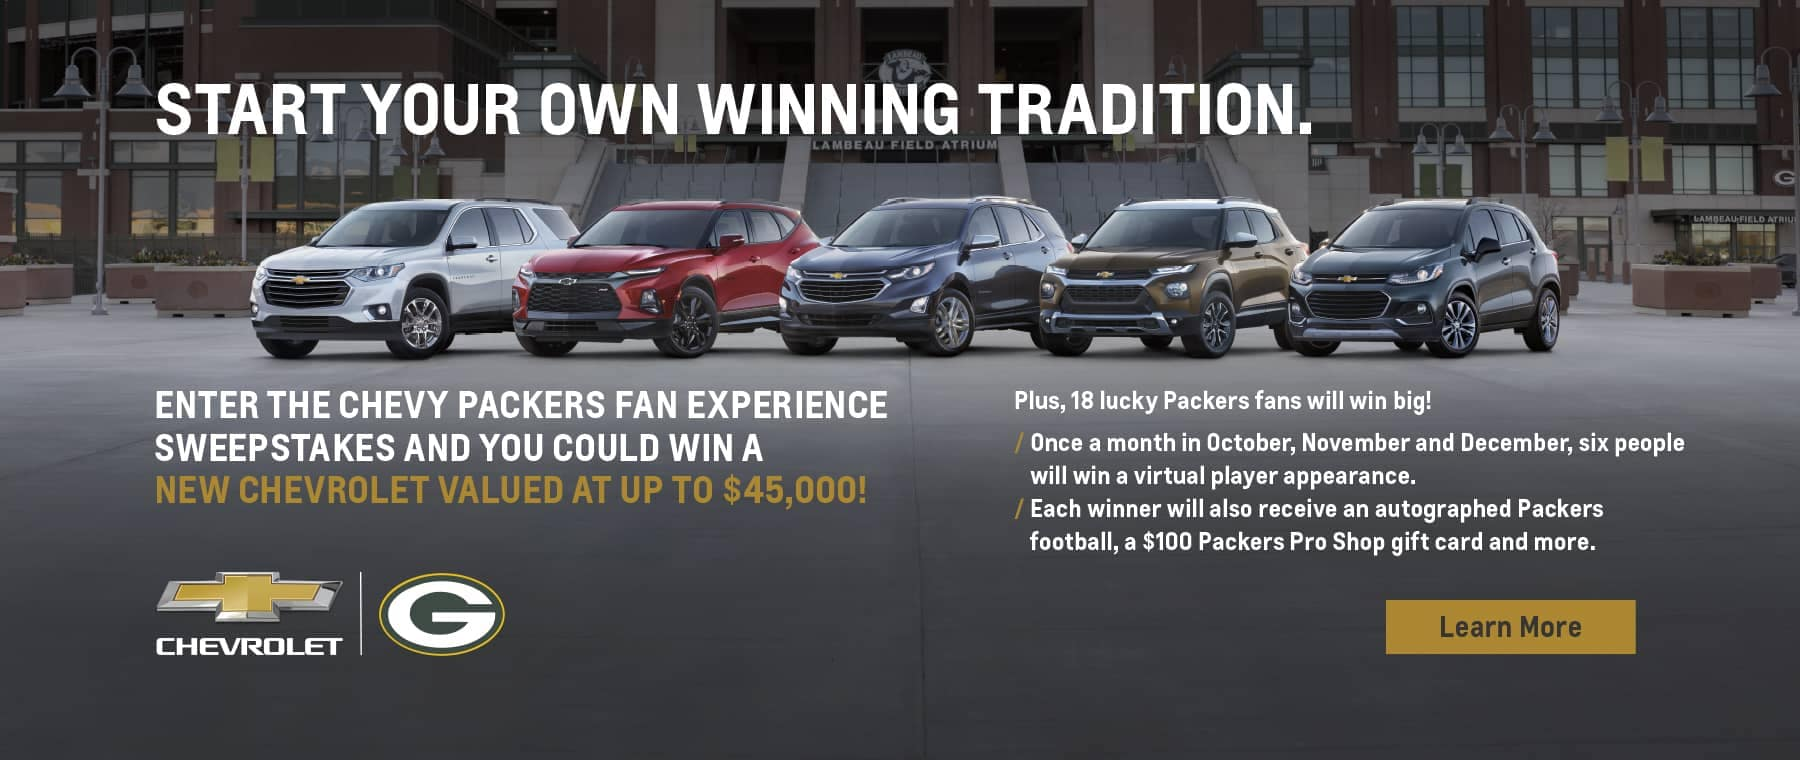 GreenBayPackersDigital_DealerInspire_HeroSlideDesktop_1800PXx760PX__402012296C01